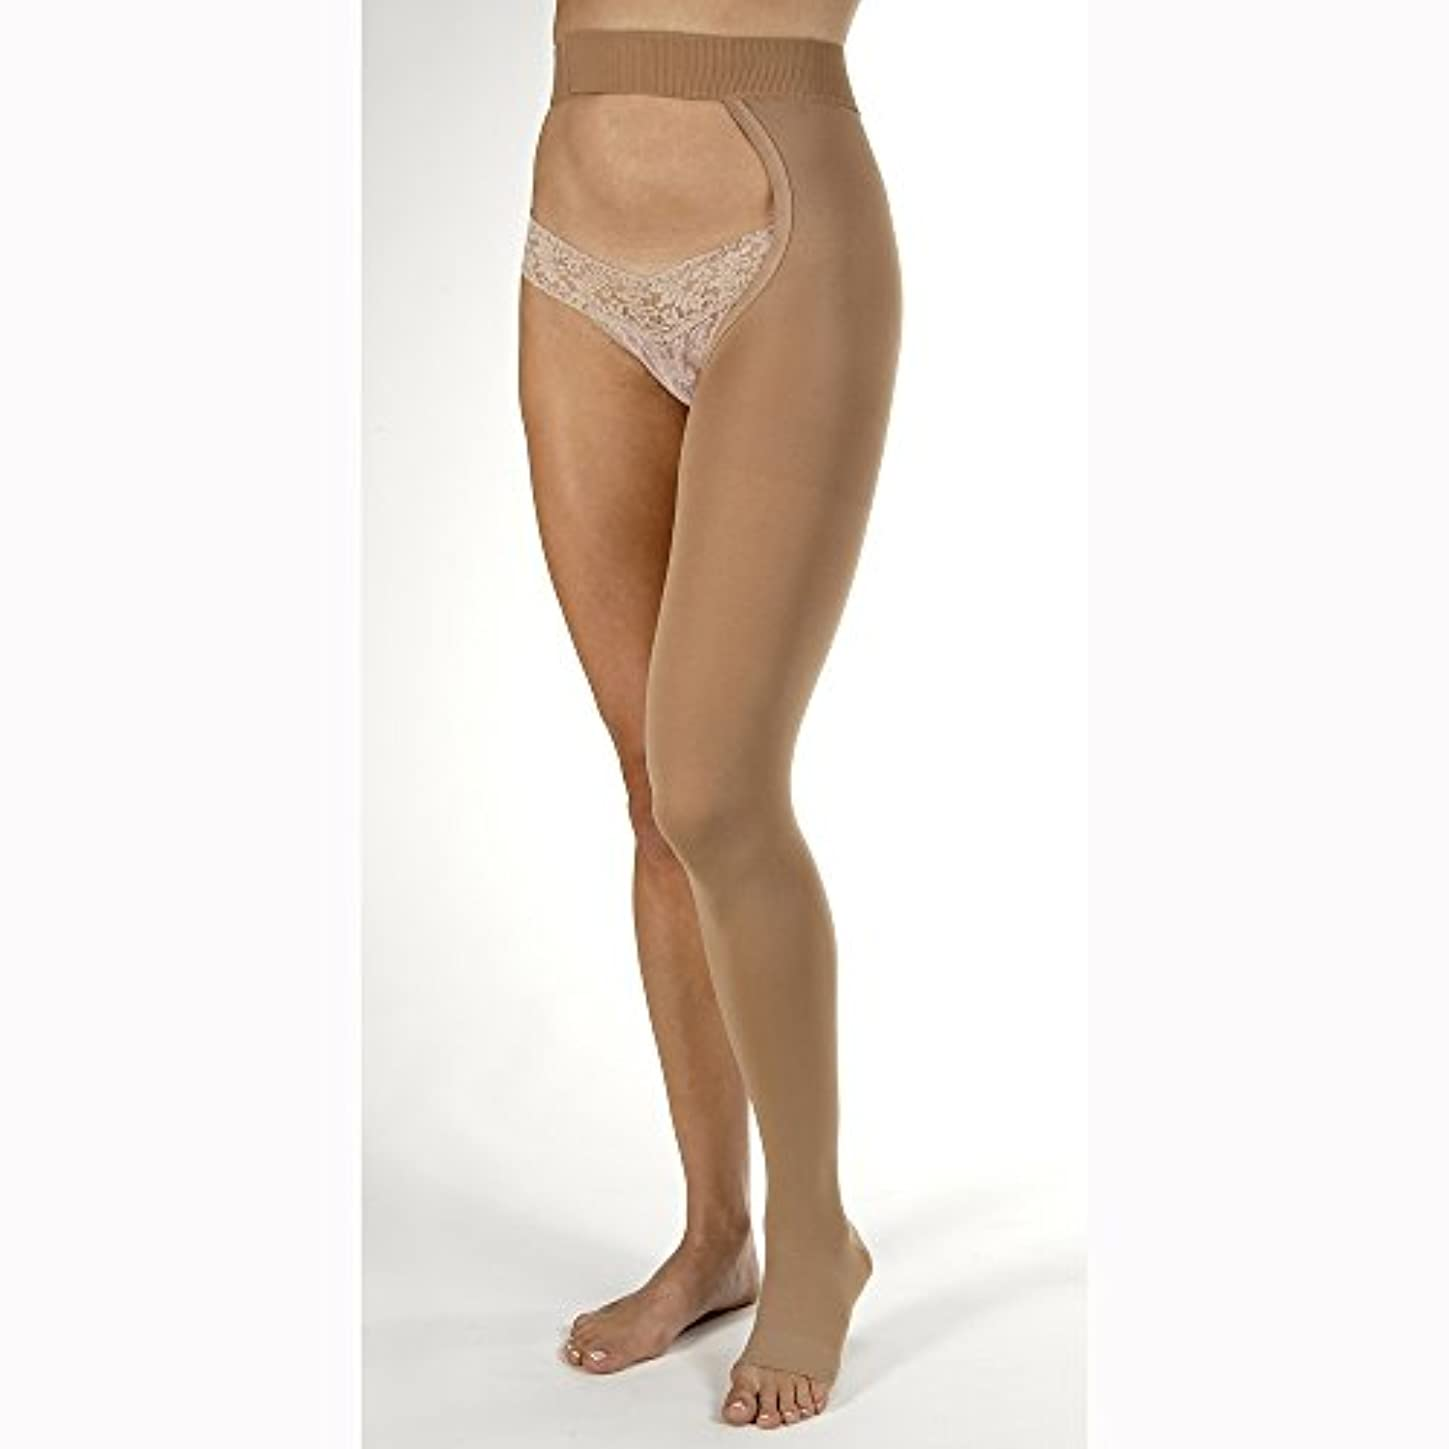 テスピアンかろうじてラメJobst Relief Open Toe Chap Style Right Leg - 30-40 mmHg Beige X-Large 114791 by Jobst